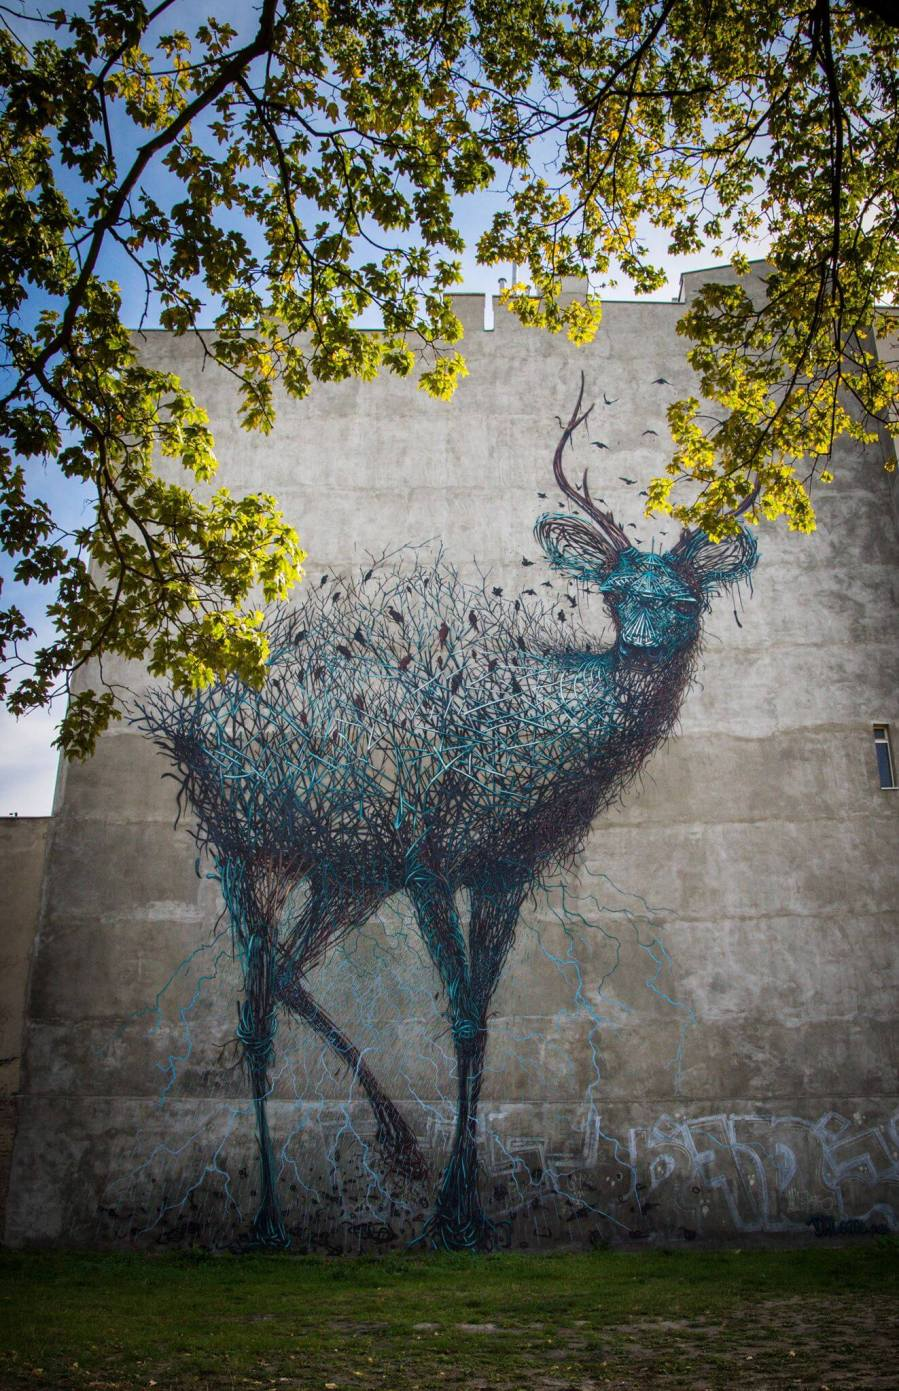 Daleast, Urban Forms street art gallery, Lodz, Poland. Photo credit M. Sikora